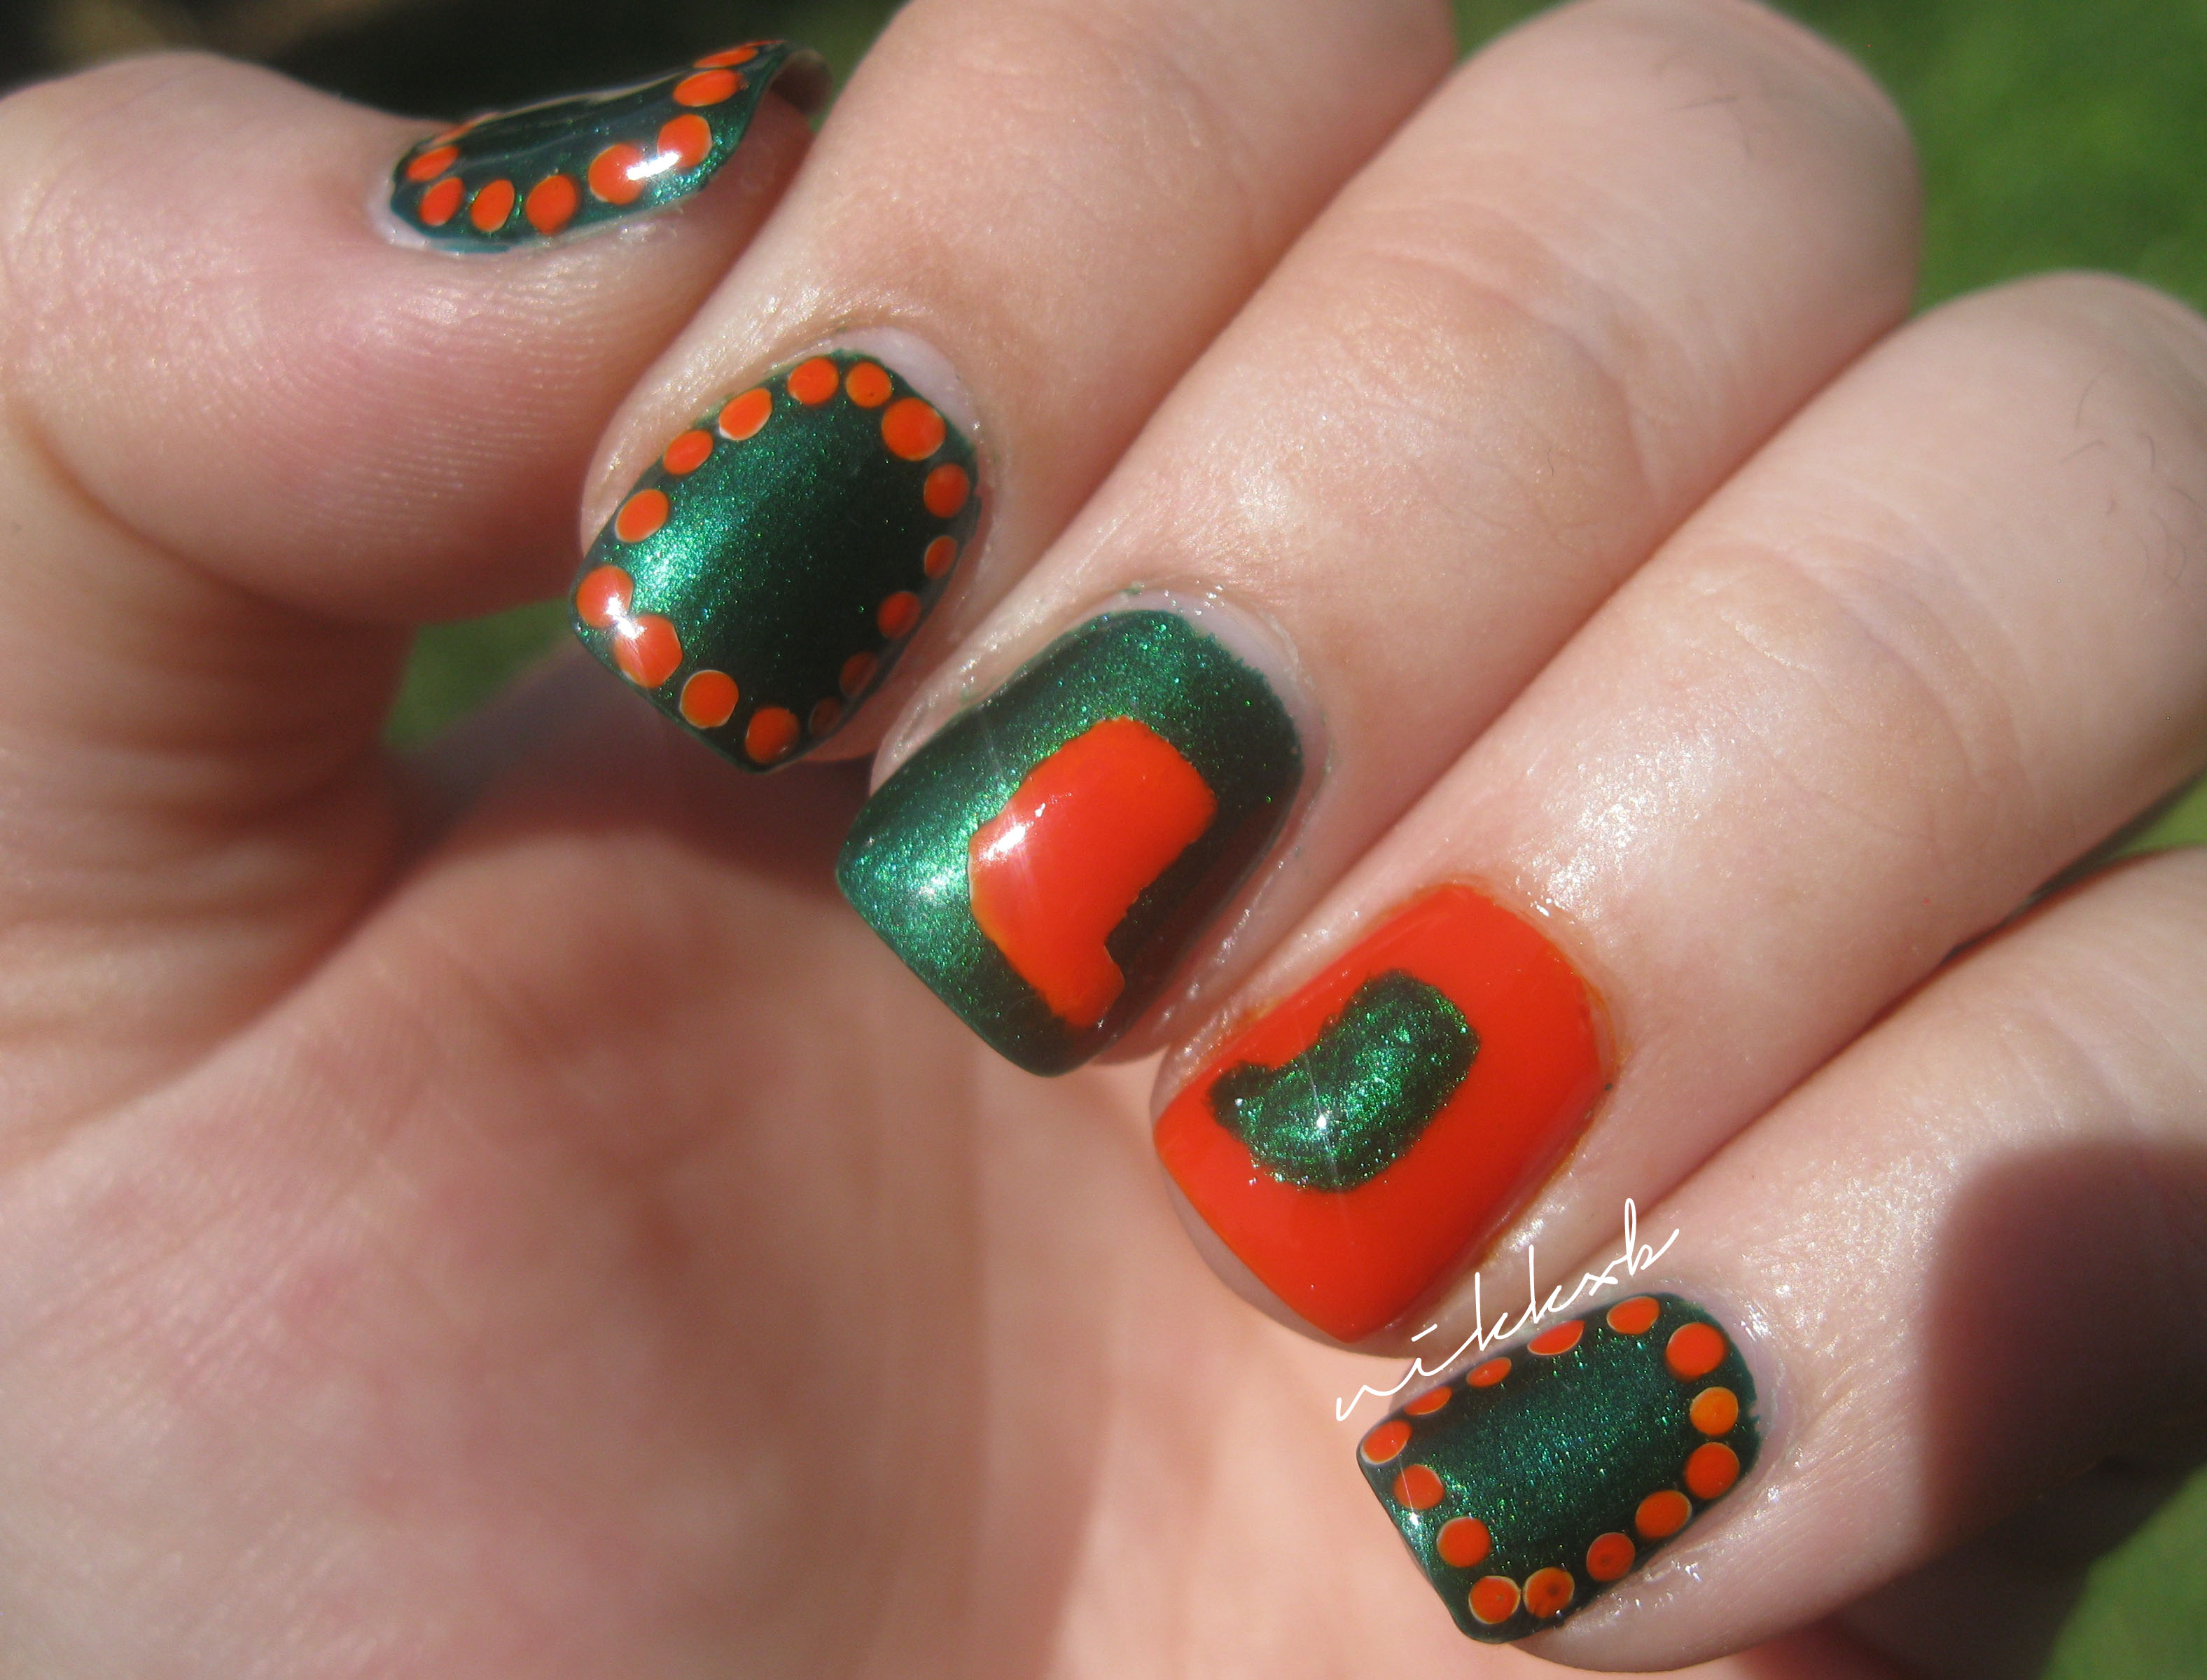 University of Miami – Nik@Nails